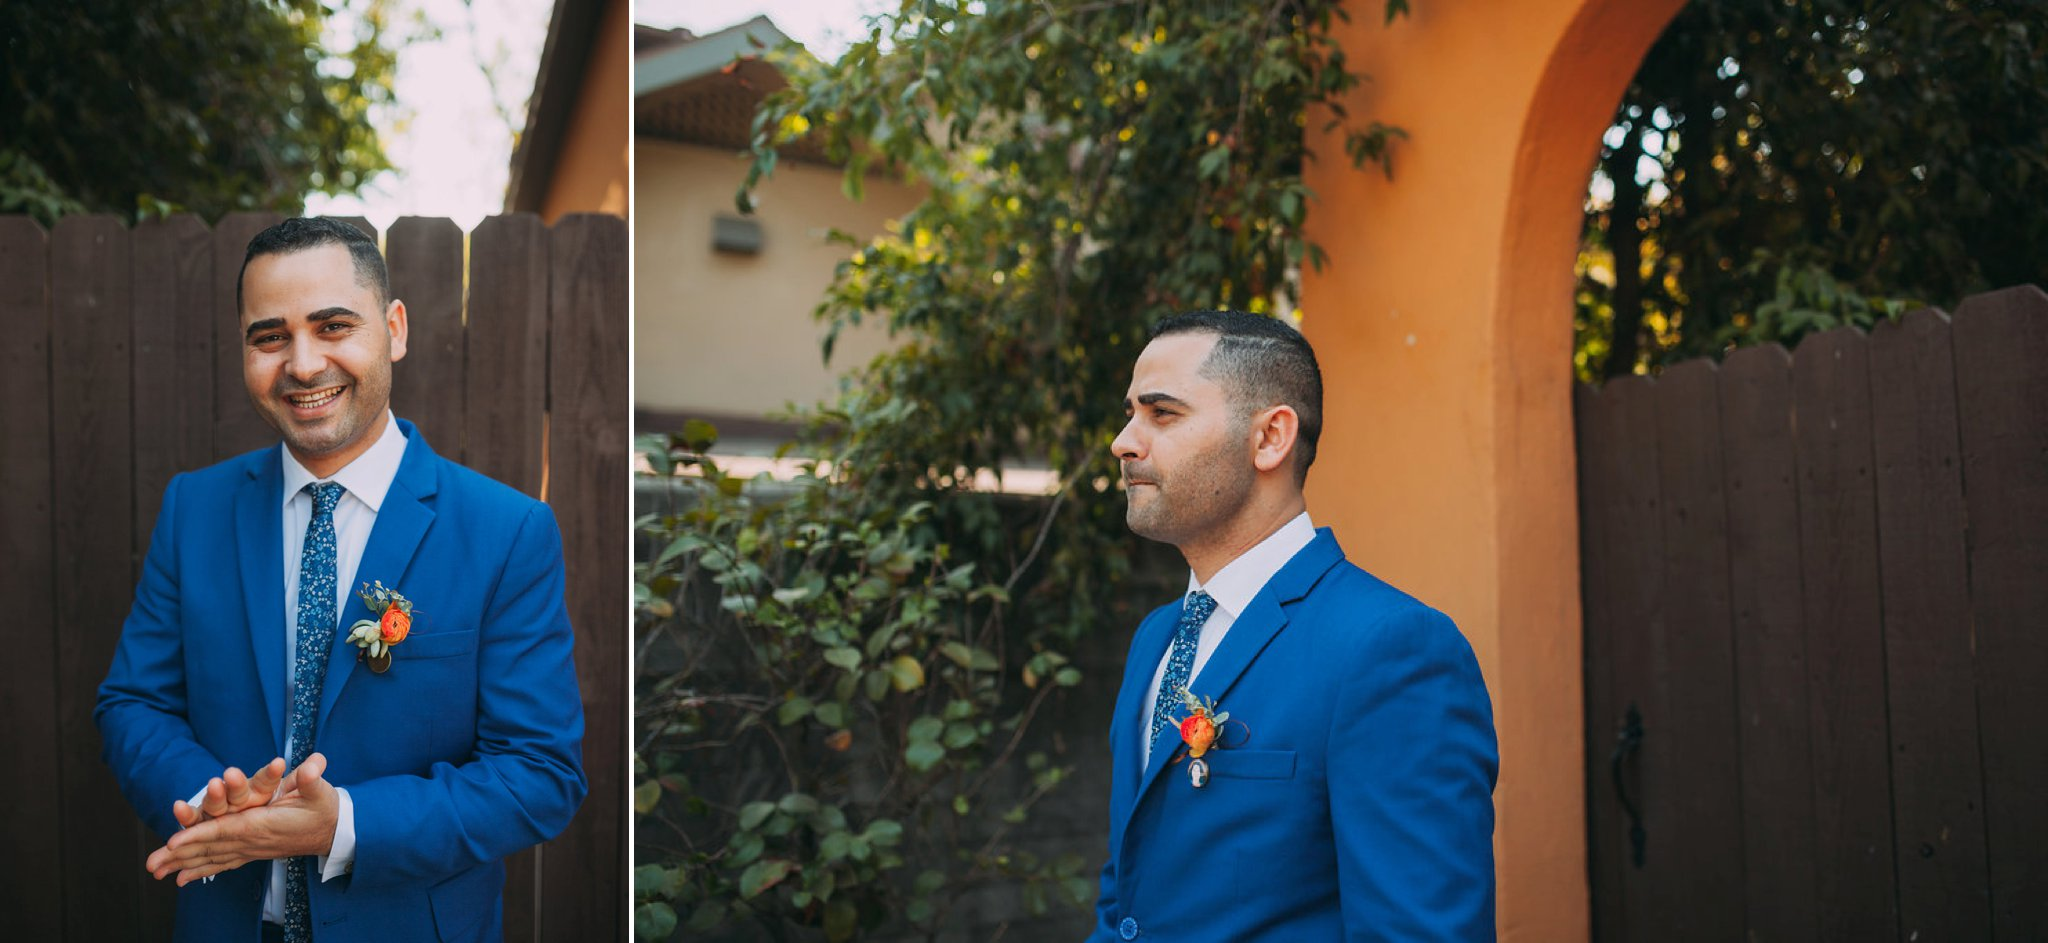 Feminist Wedding Photography Carly Romeo Photography Richmond VA Destination Altadena California Blue Suit Pattern Tie Orange Floral Groom Egyptian Egypt